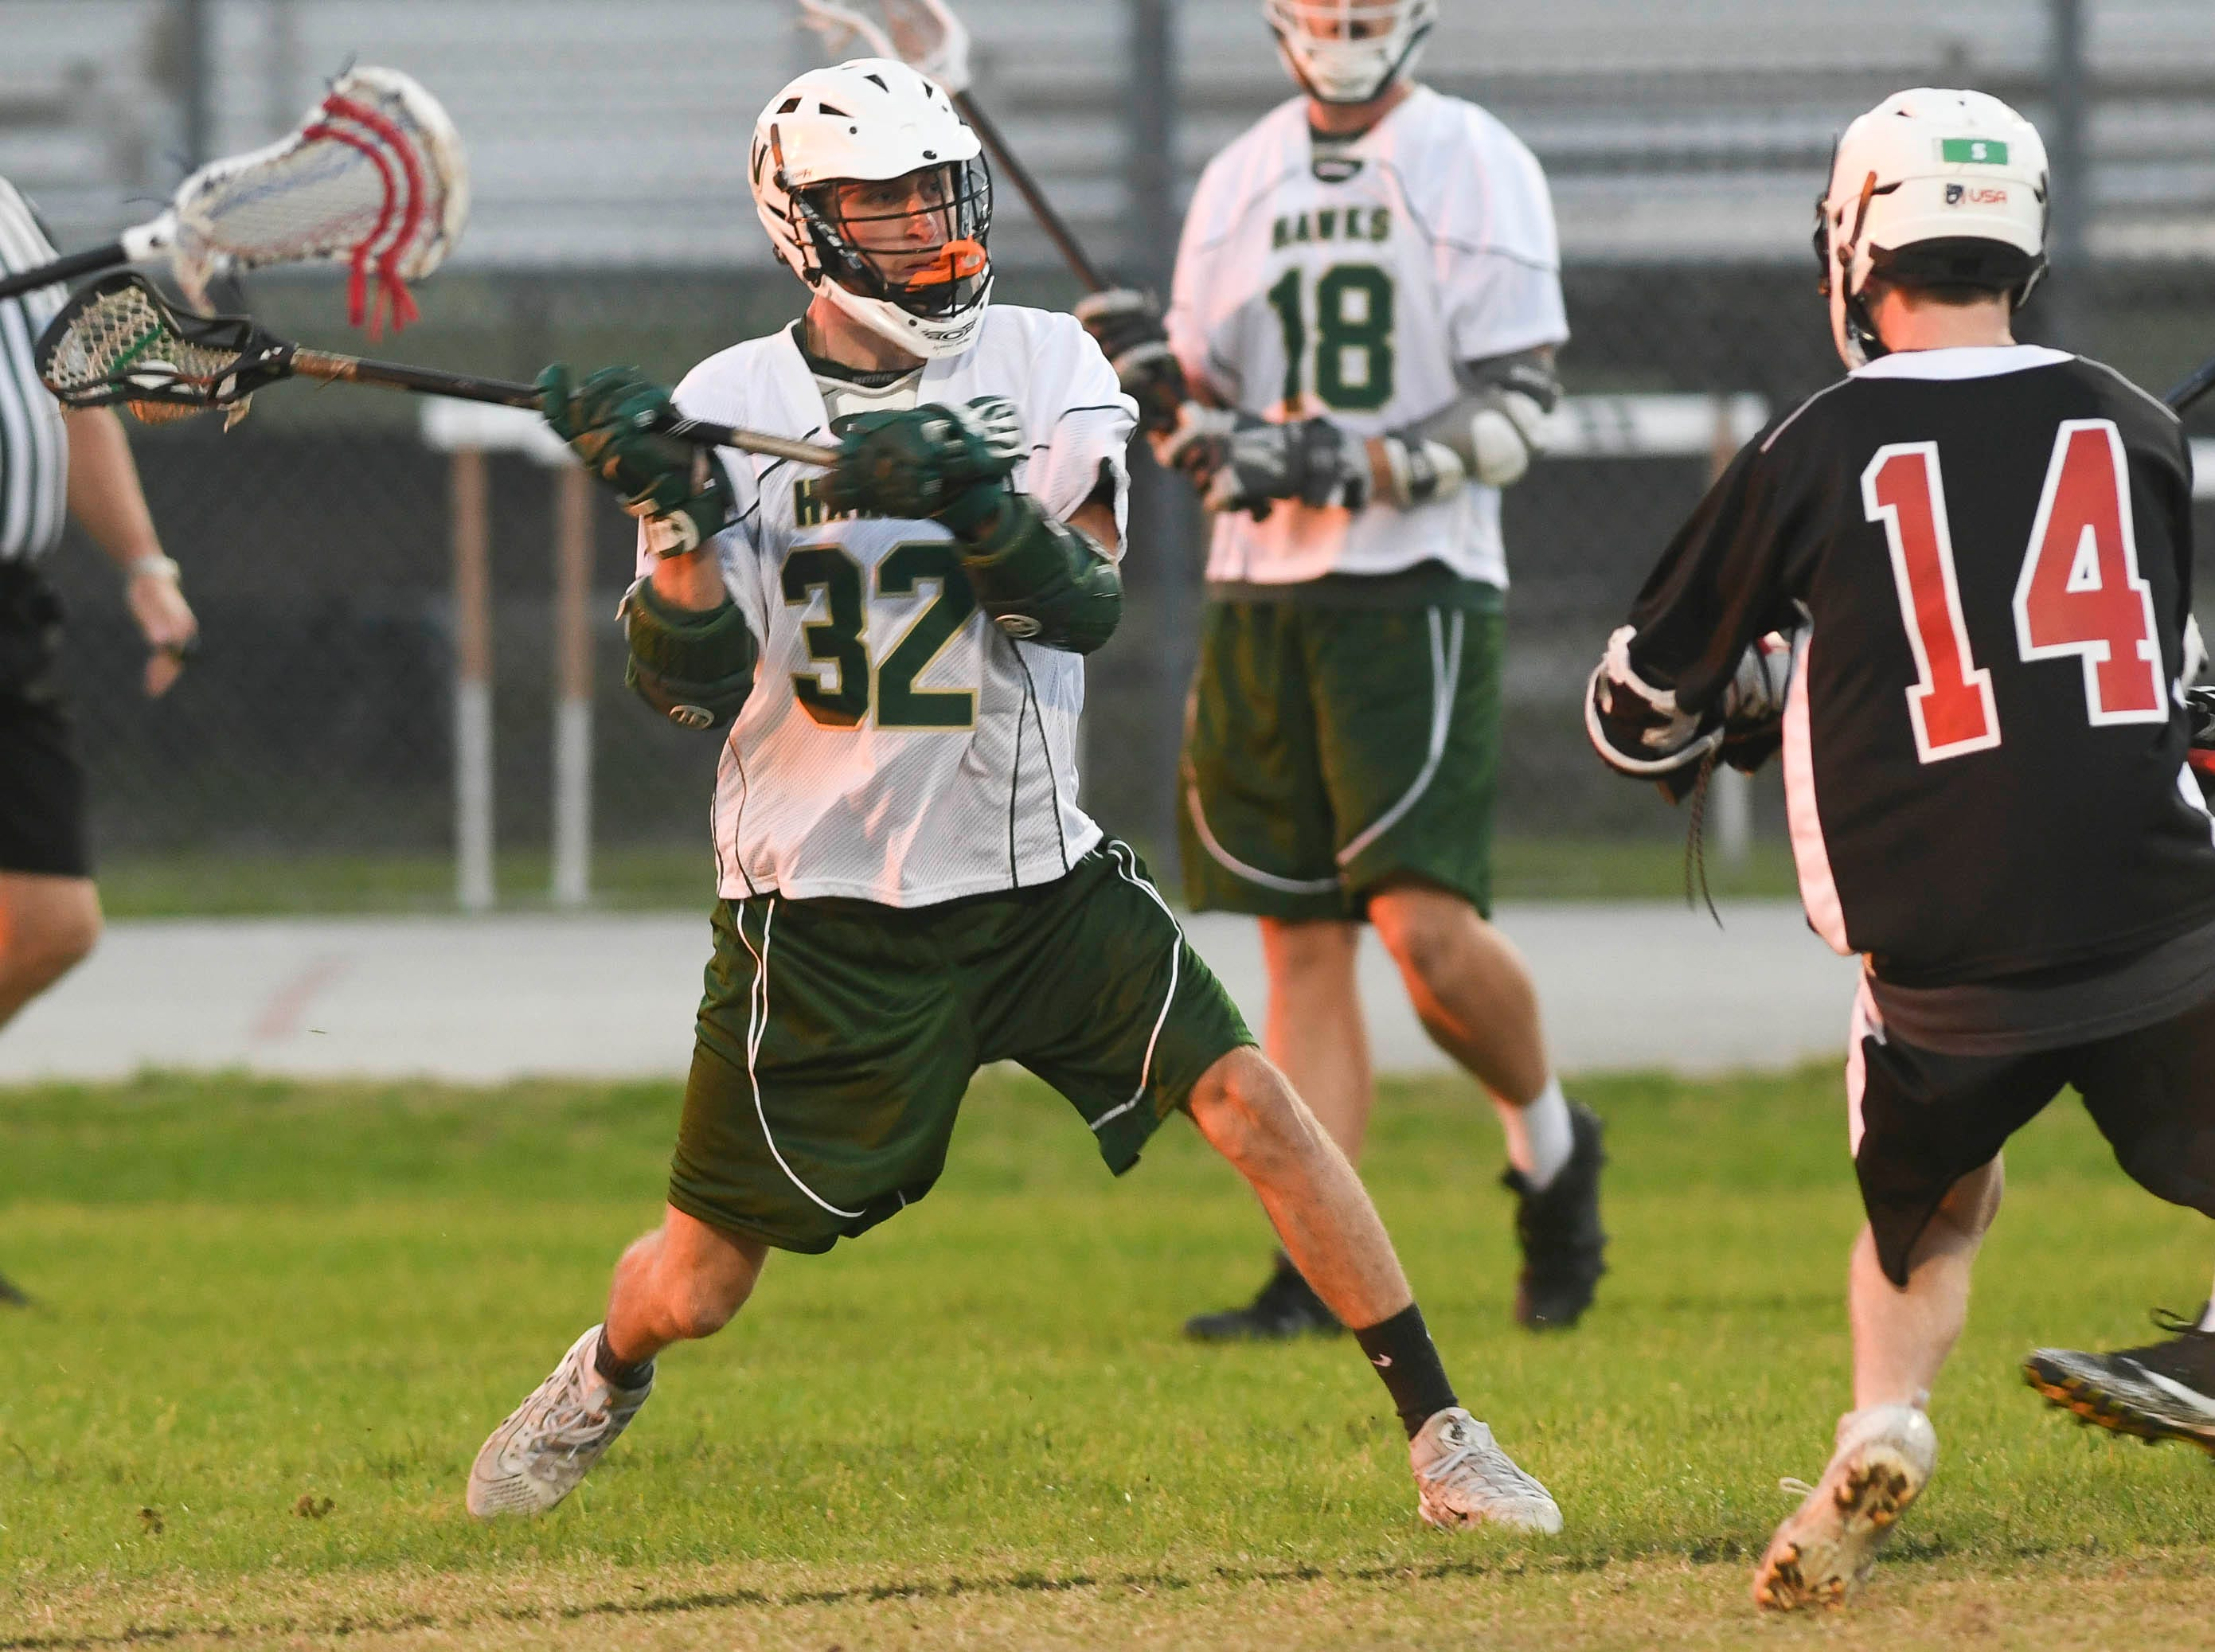 Viera's Will Patjens takes a shot on goal during Tuesday's game against Satellite.